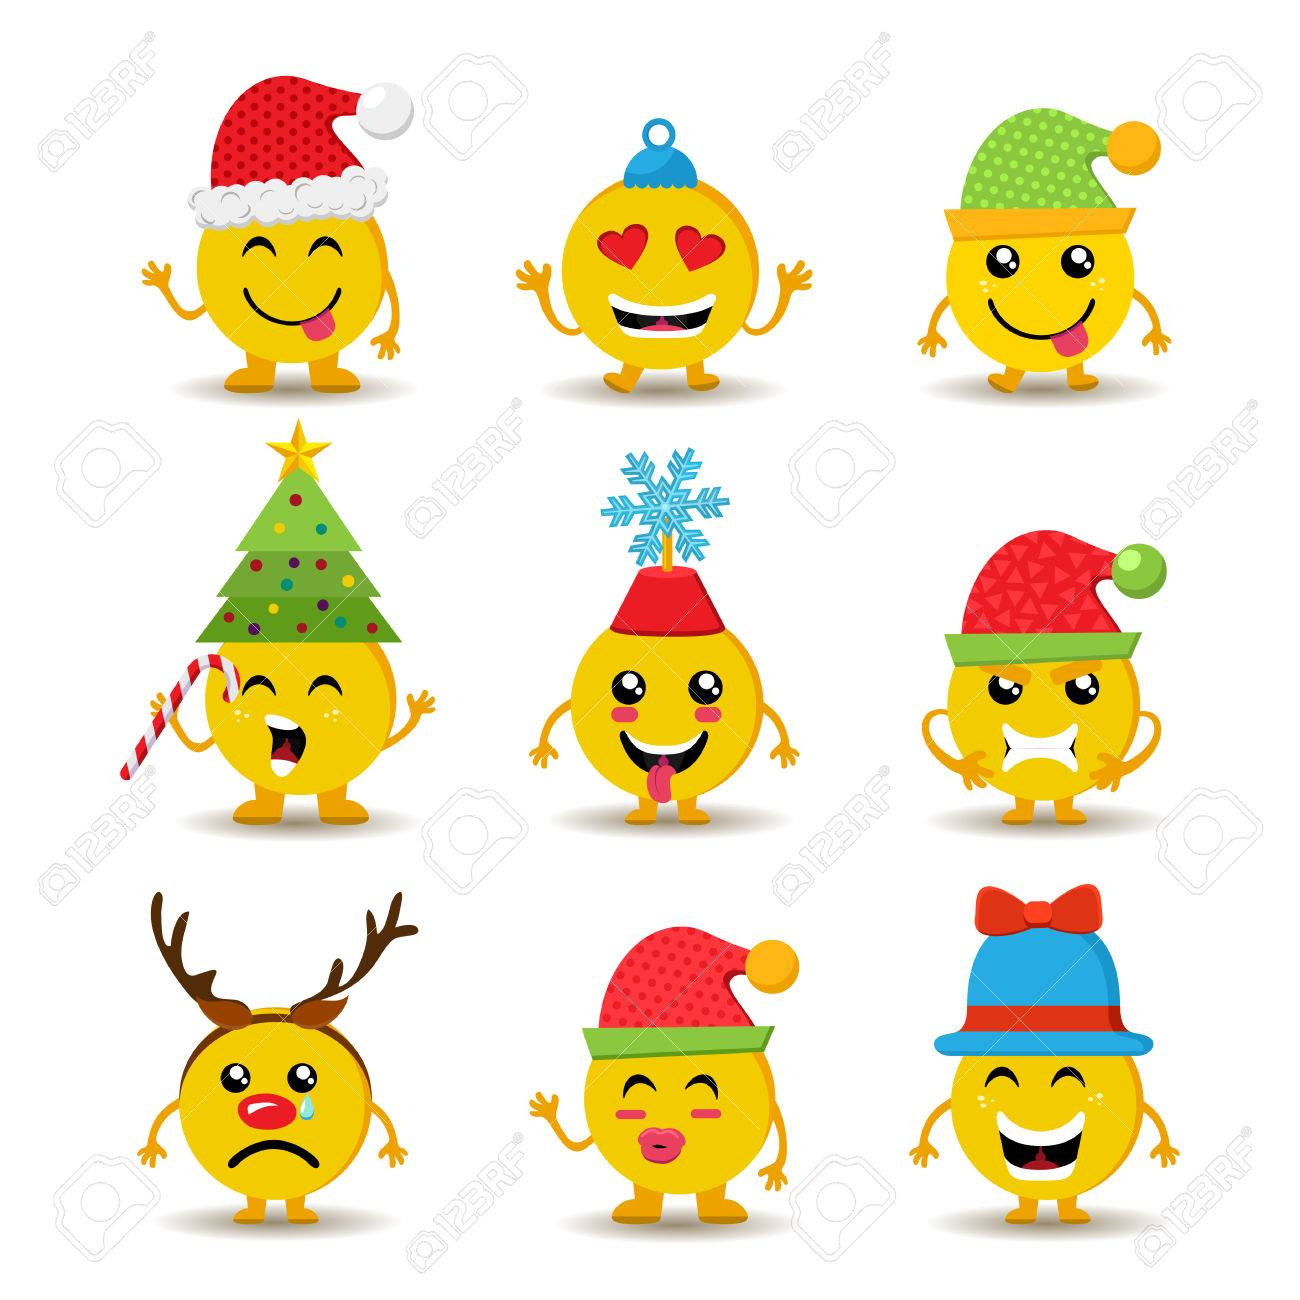 Set Of Holiday Smiley Faces Christmas Emoji Icons With Cute